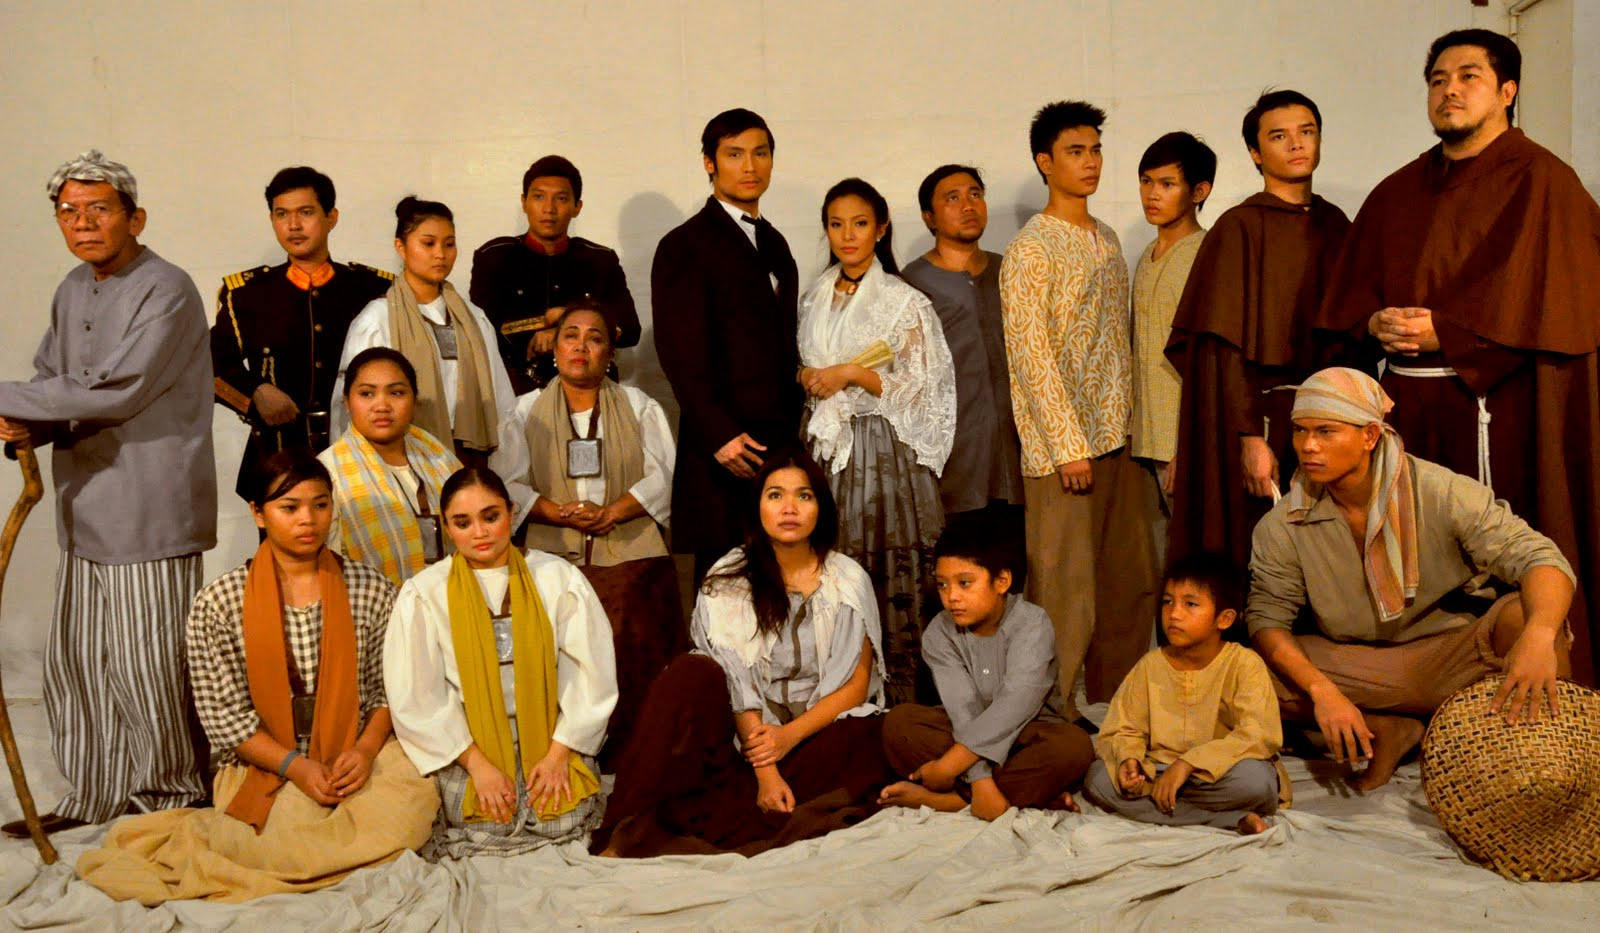 """rizal stage play Numerous biographies celebrate rizal as """"the first filipino"""" (guerrero) """"the pride of the malay race"""" (palma} solitary individual, robinson crusoe as master- narrative hero, occupied center-stage in mapping act of communication, rizal plays the spiritual mentor, fraternal counselor, and tribal sage all."""